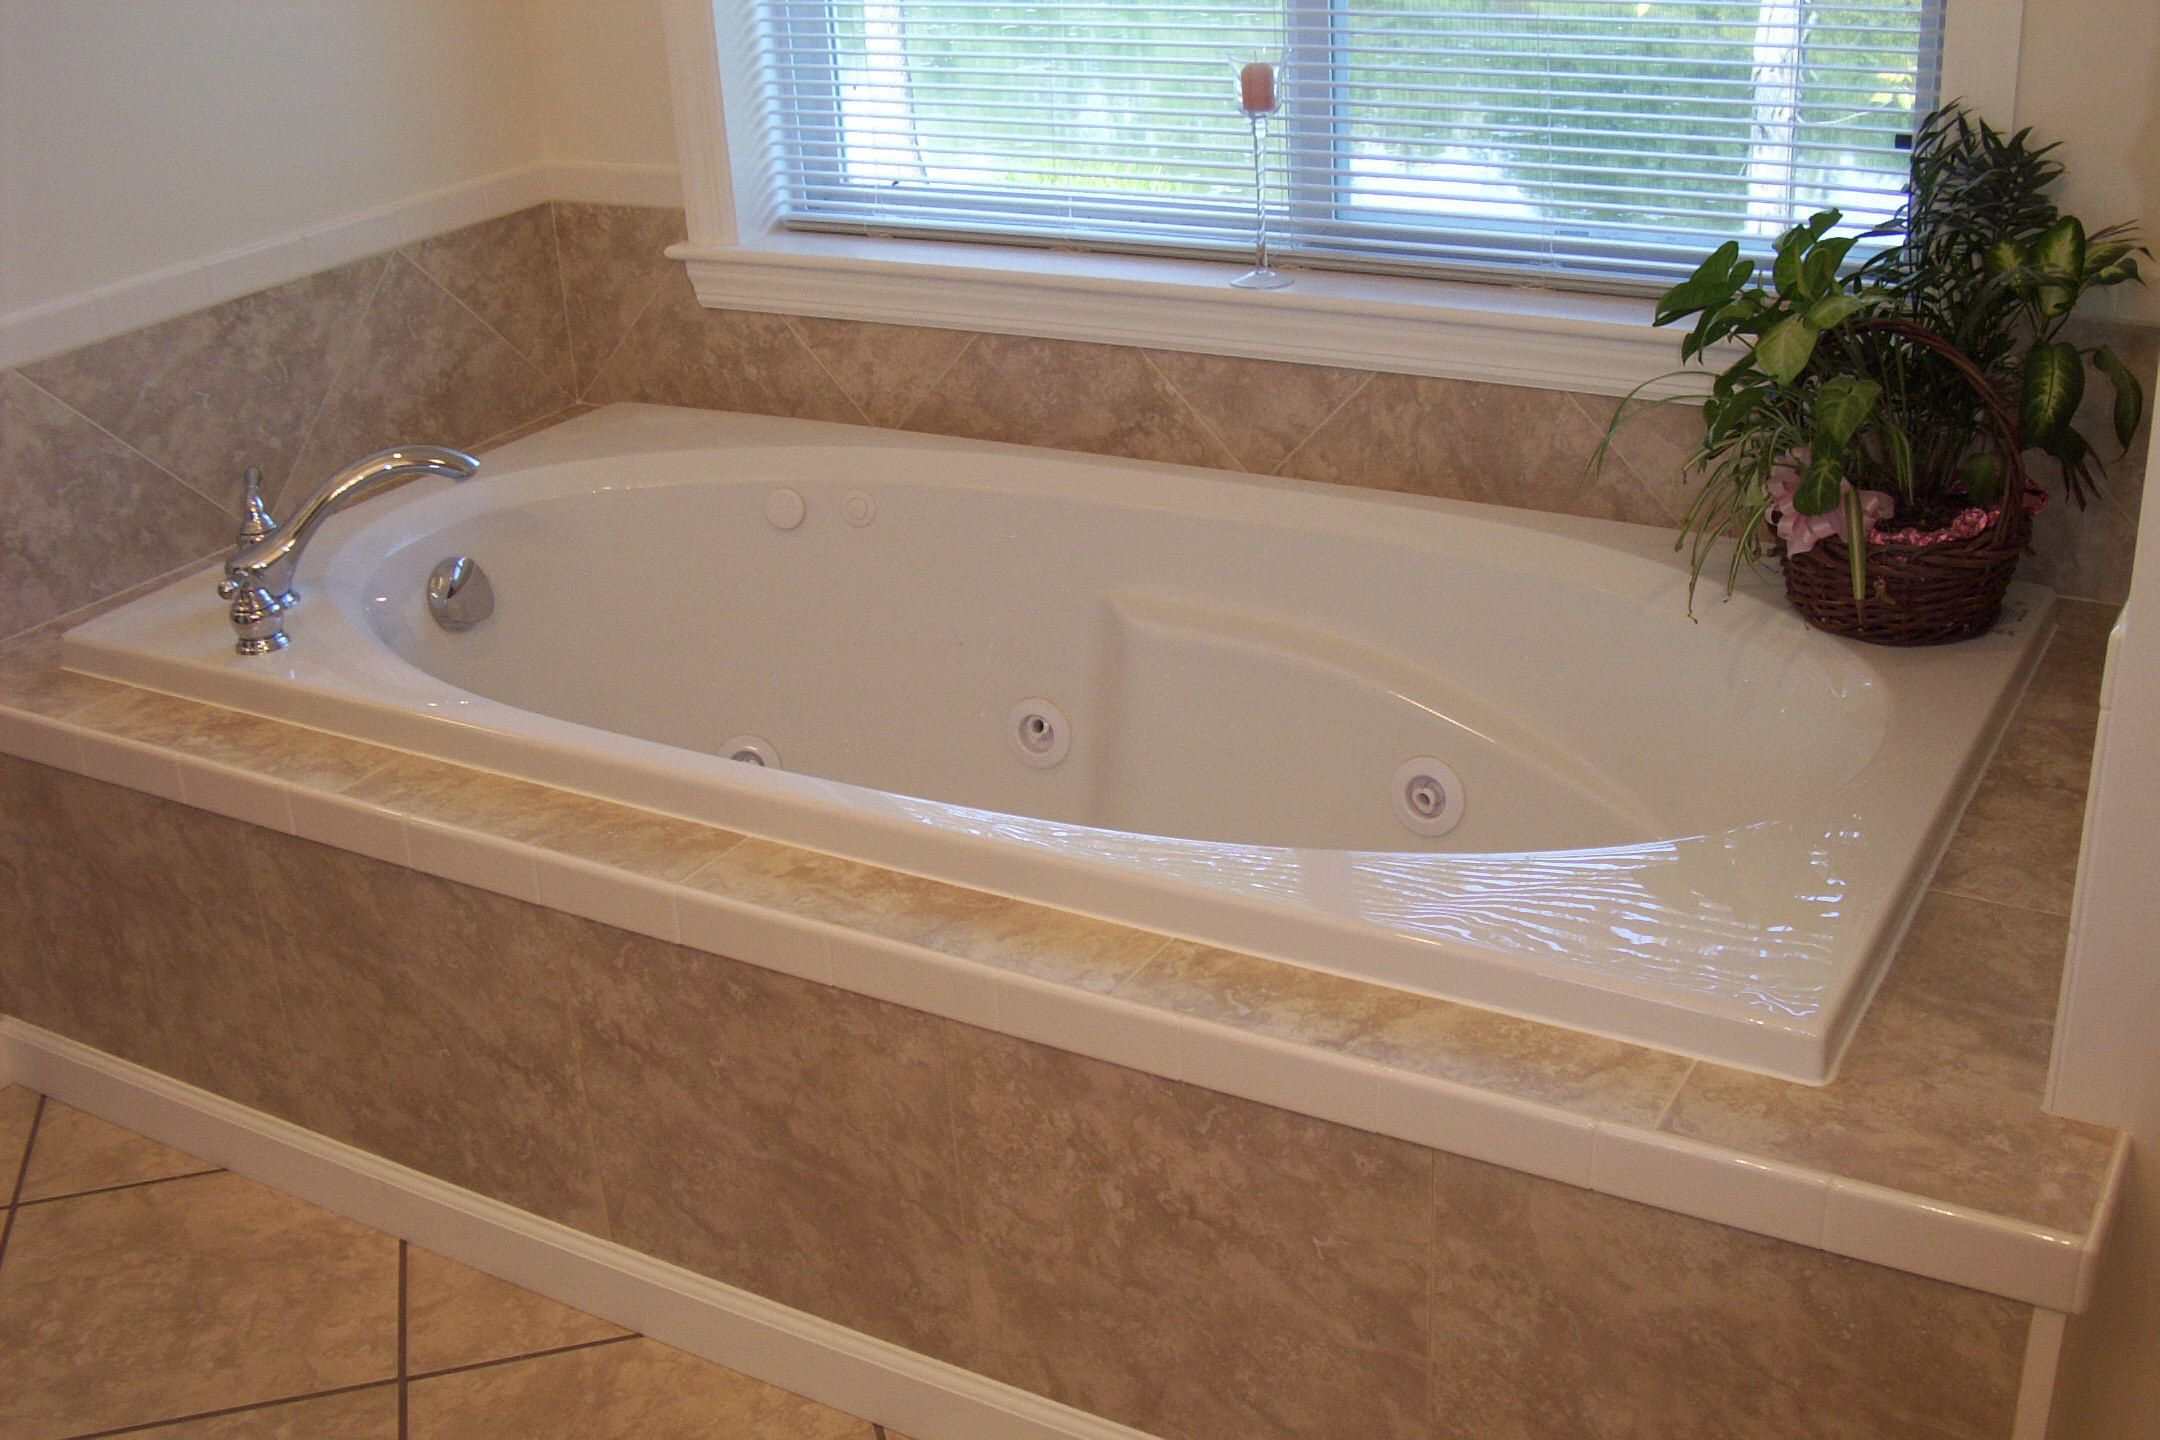 78 Best images about Mater Bathroom on Pinterest   Soaking bathtubs  Bathroom remodeling and Whirlpool tub. 78 Best images about Mater Bathroom on Pinterest   Soaking